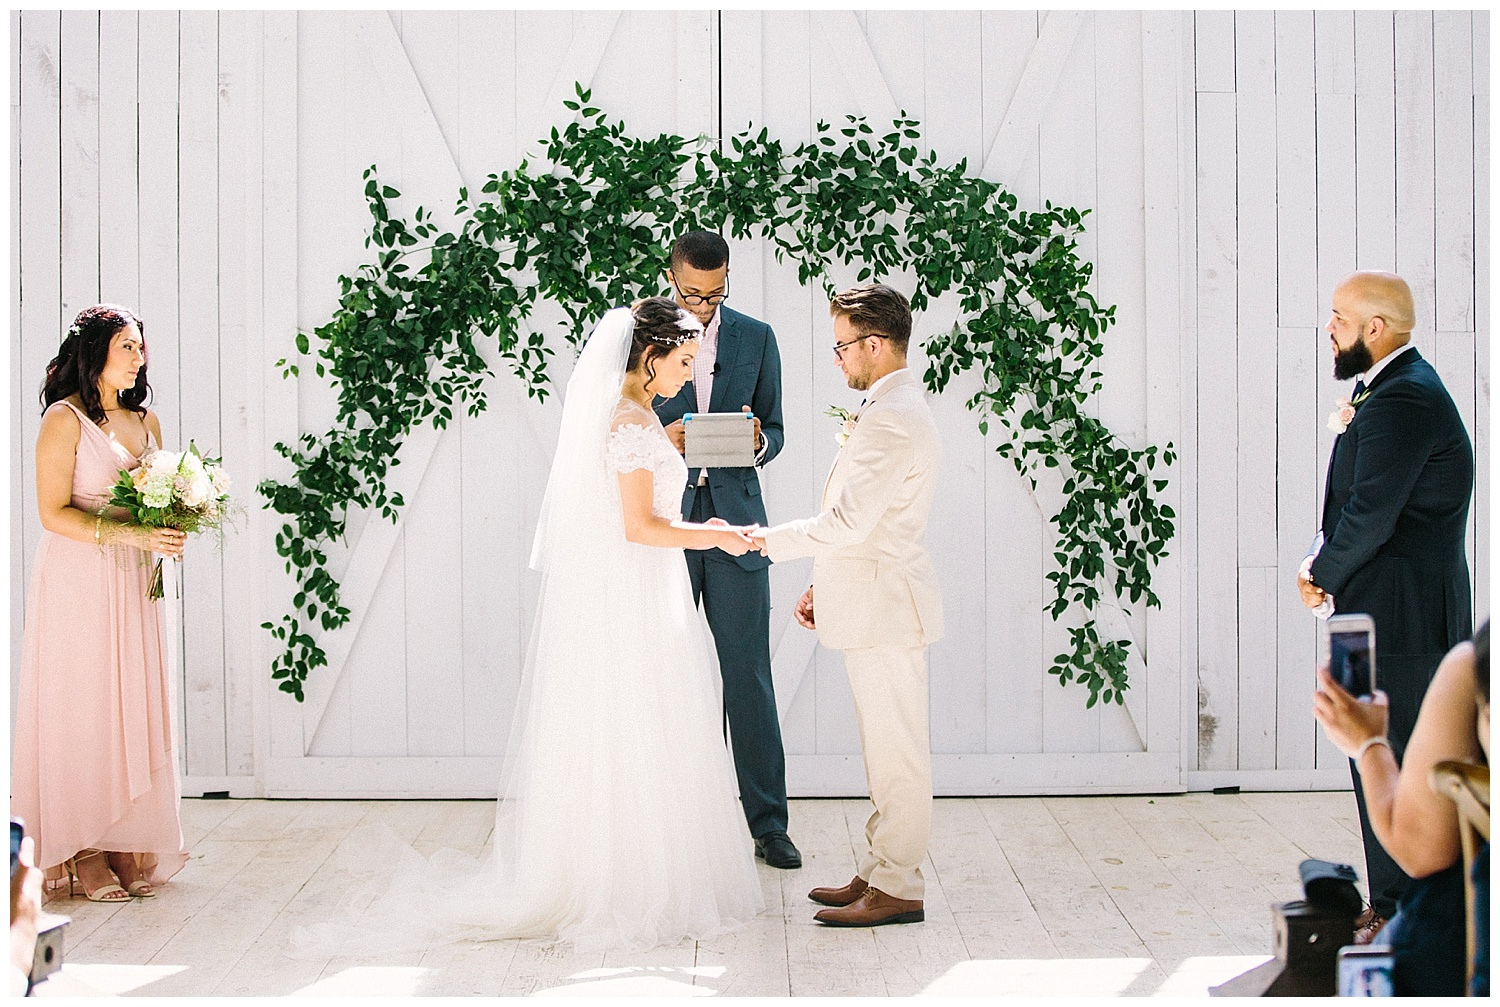 DFW Wedding Day Advice